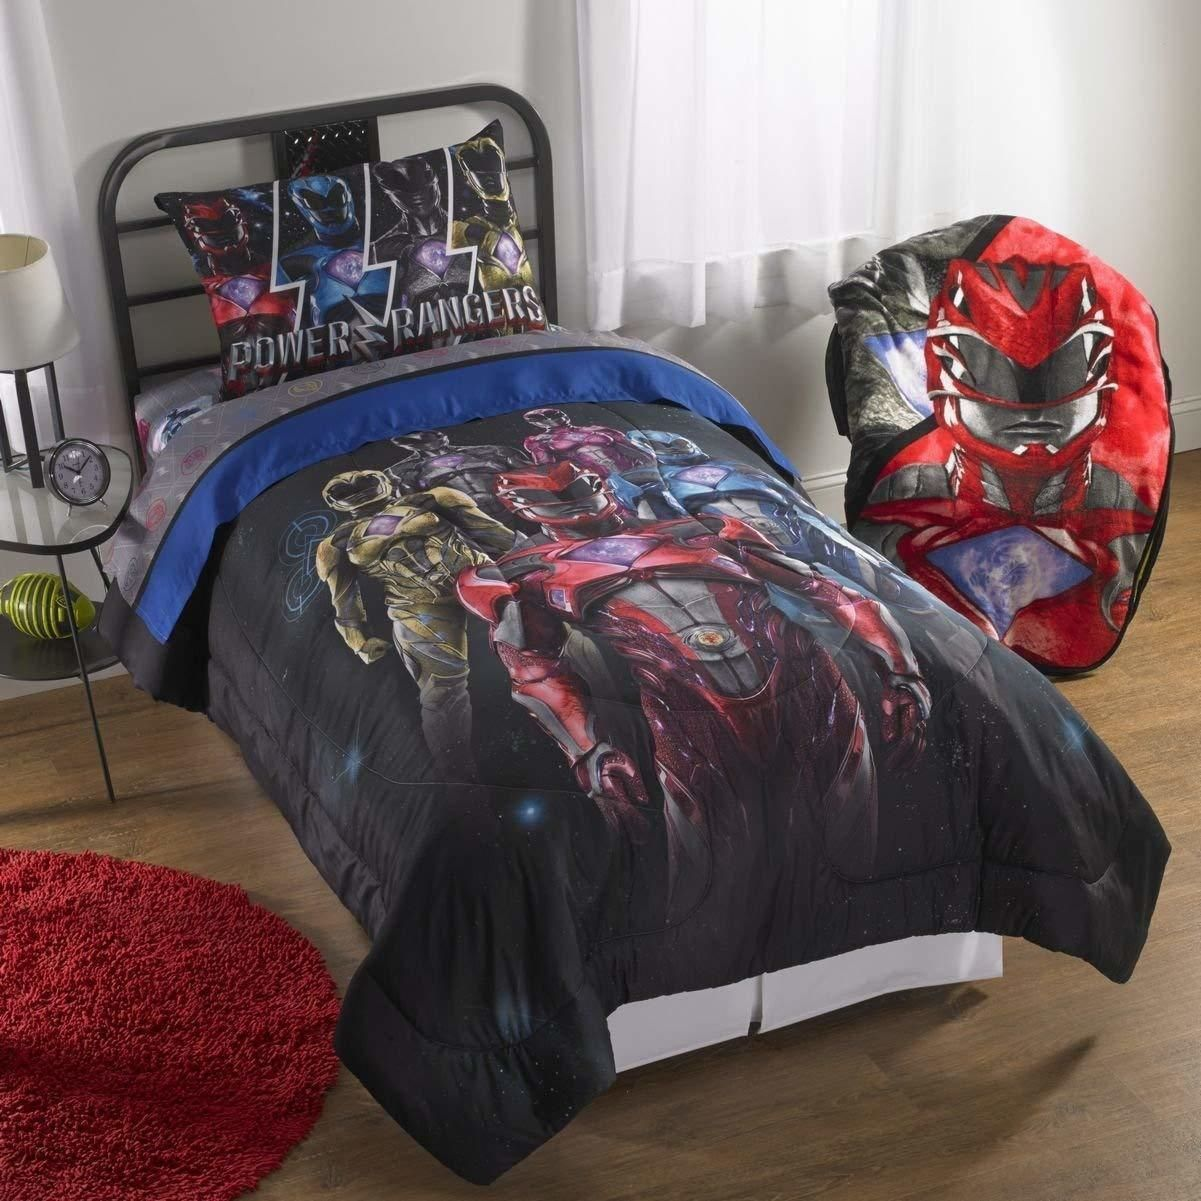 Comforters And Sets 66728 Power Rangers Band Together Twin Full